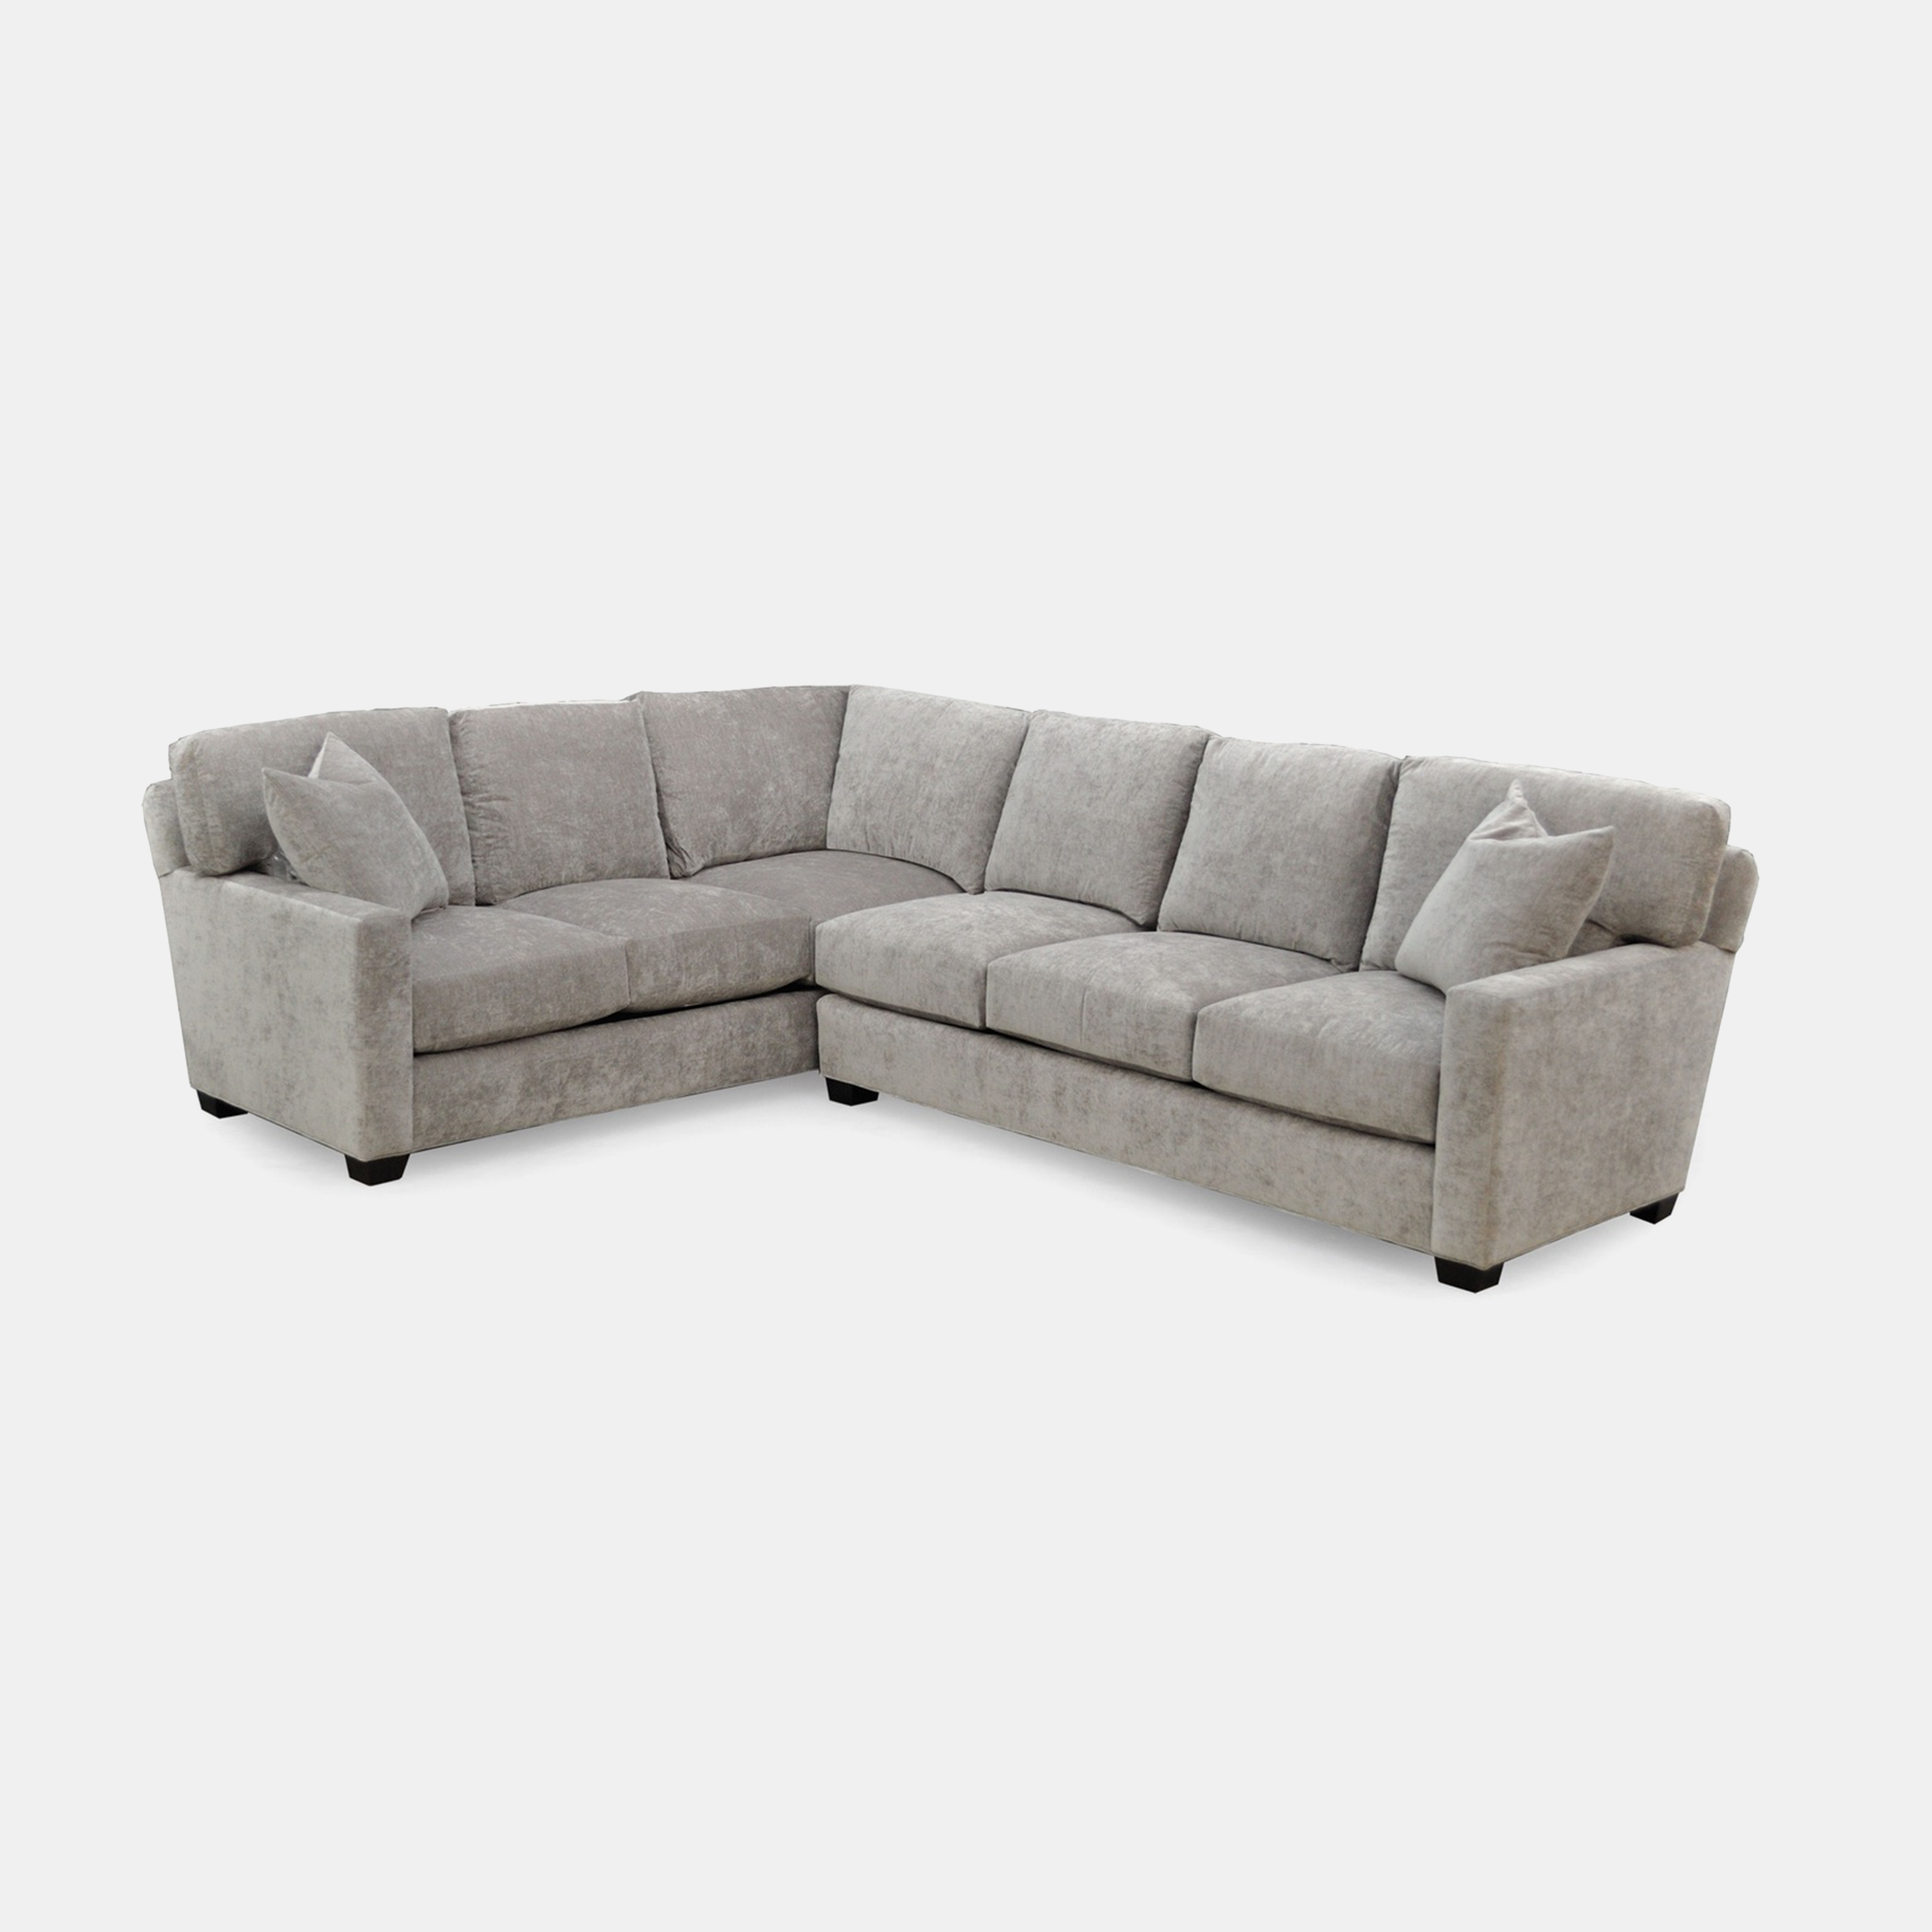 Park City Sectional  Available buy-the-inch and in any sectional configuration. SKU2309STN